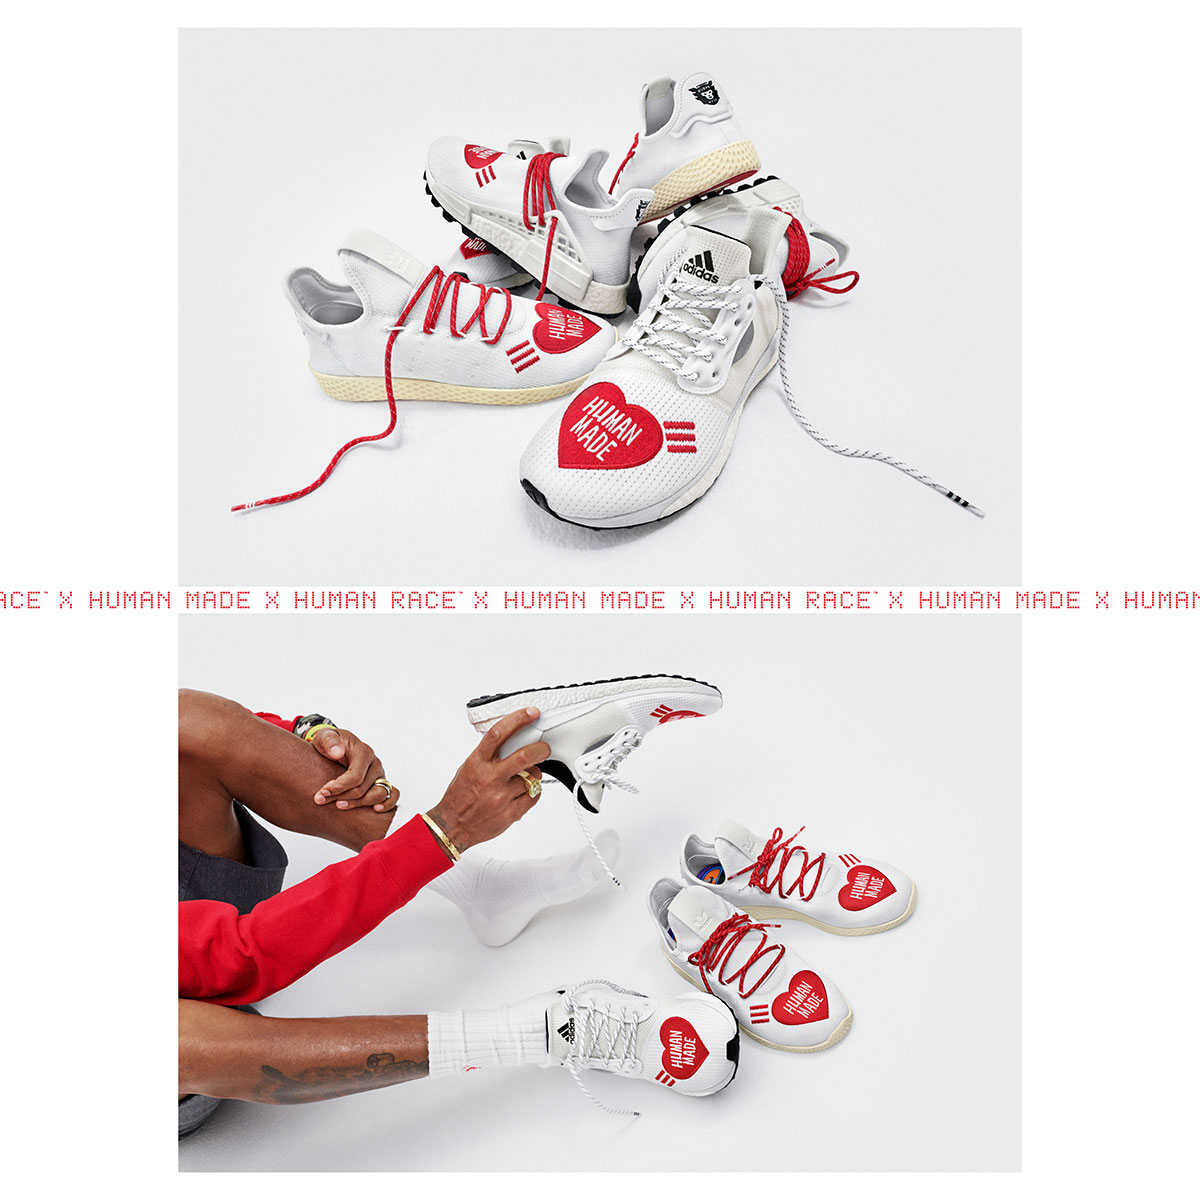 Adidas x Human Made by Pharrell Williams and Nigo - Releasing 23:00 (GMT) 04/10/19